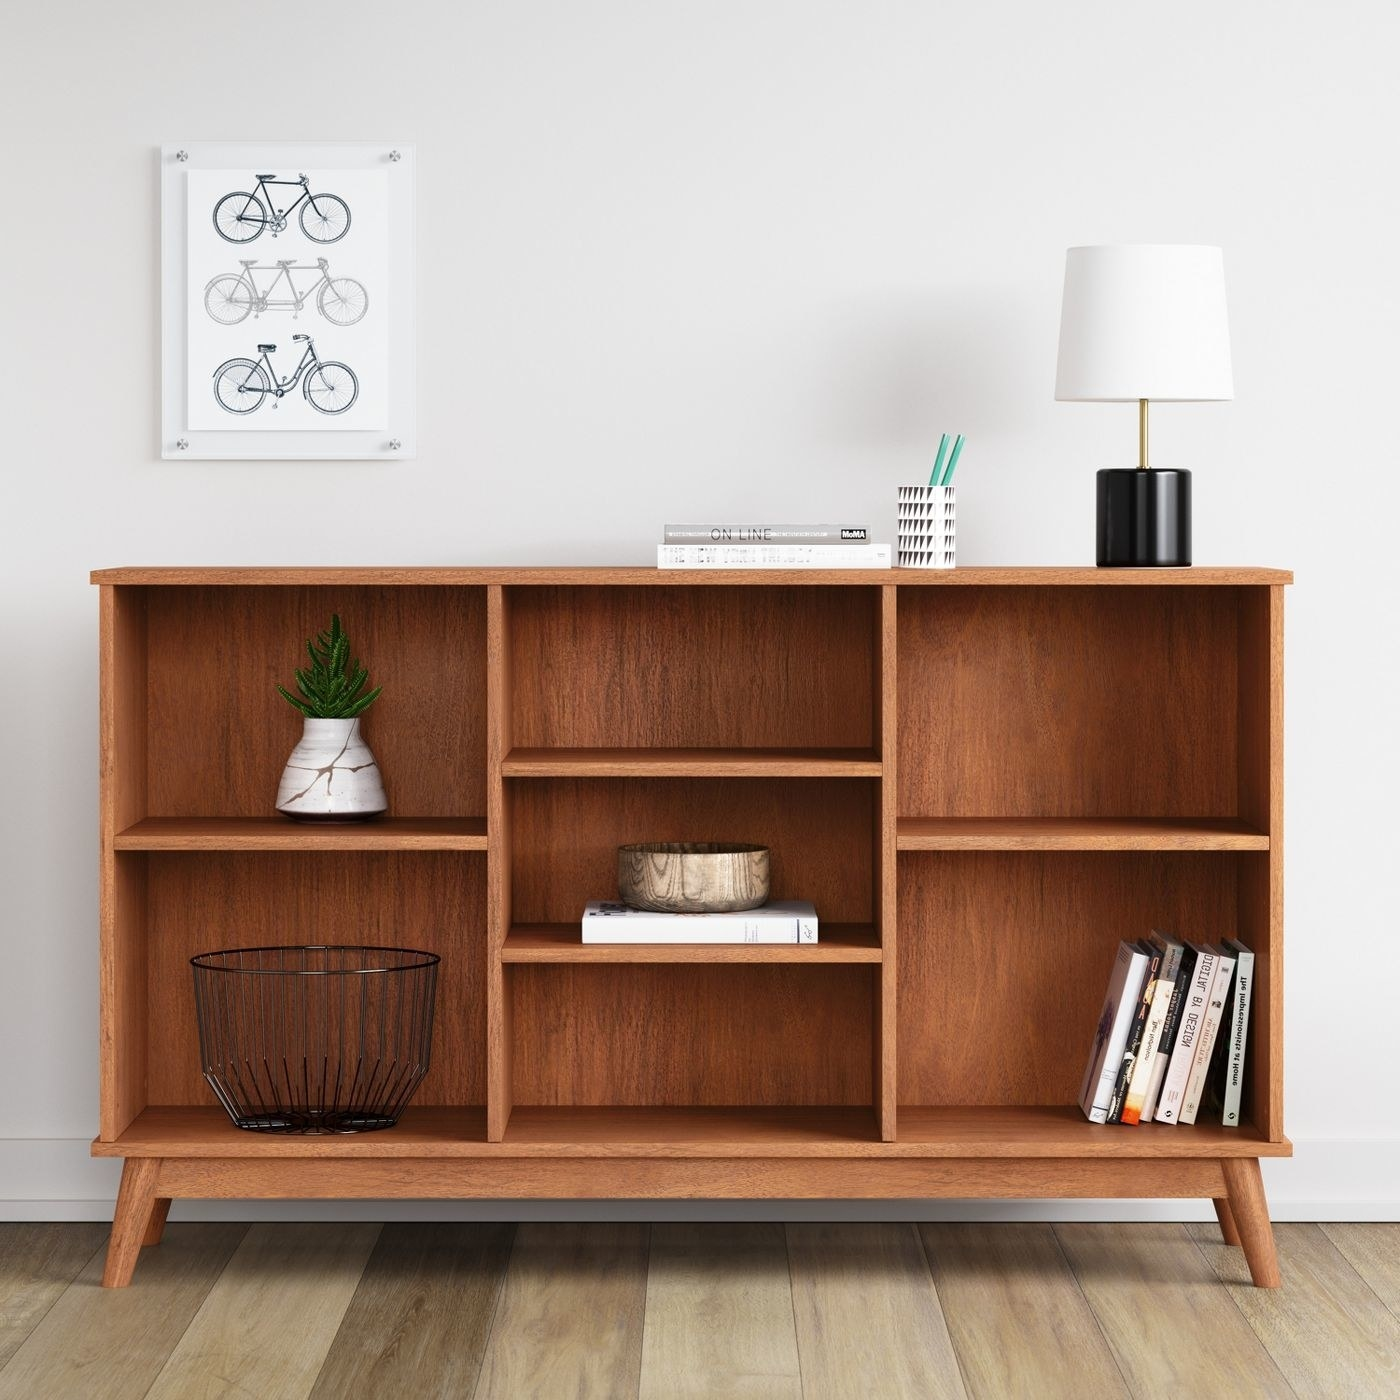 Low-rise horizontal bookshelf, with two shelves large enough for books or large decorative objects on either side, and three smaller shelves in the middle of the case